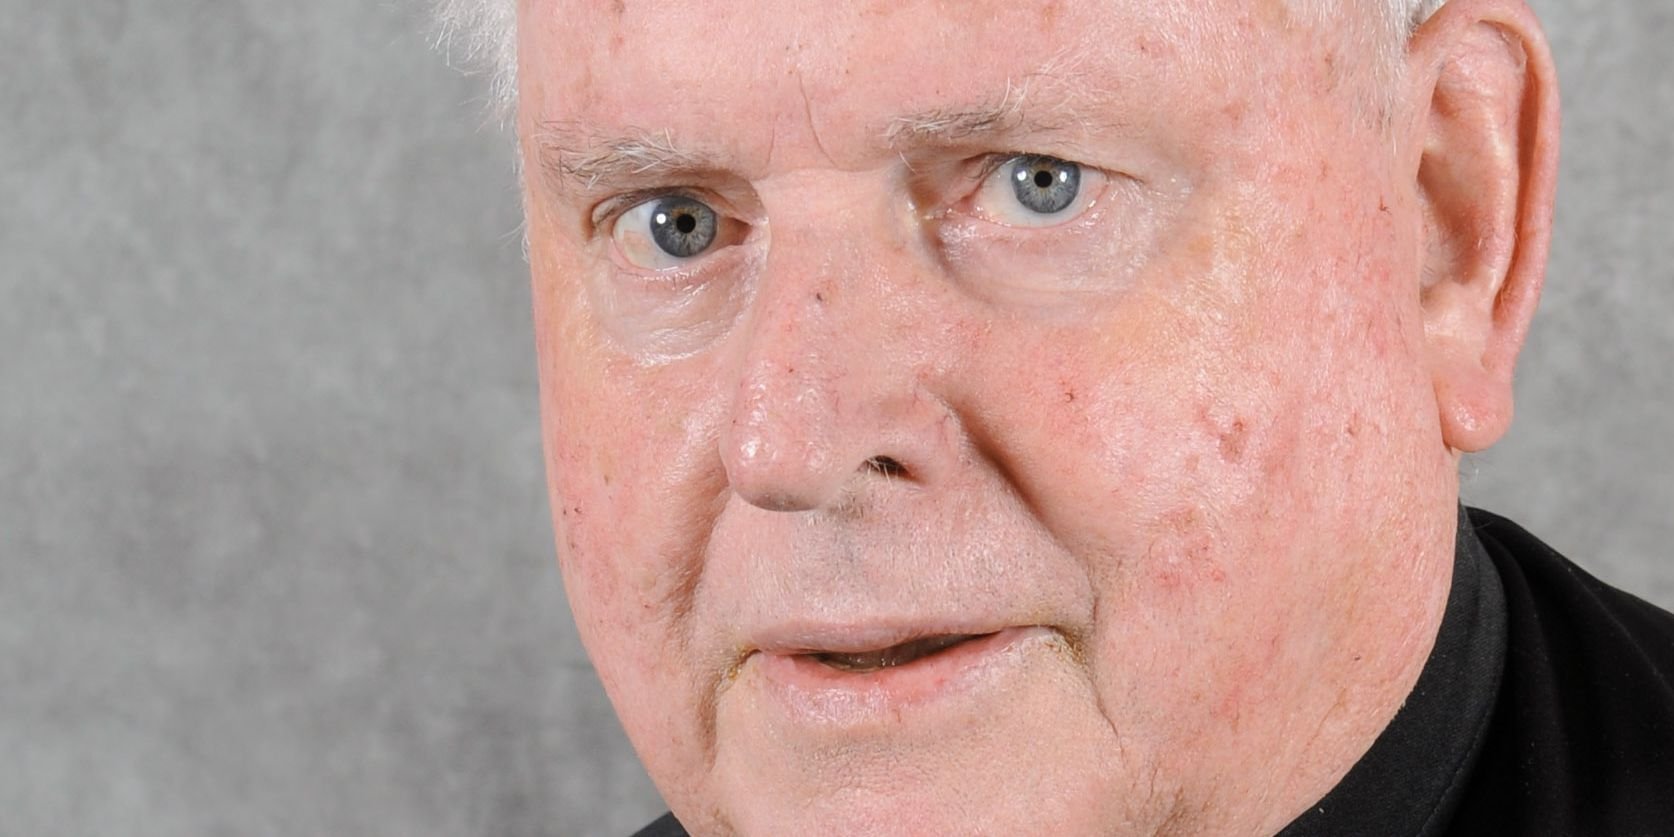 Msgr. Richard O'Keeffe, beloved pastor of Immaculate Conception Parish in Yuma, dies